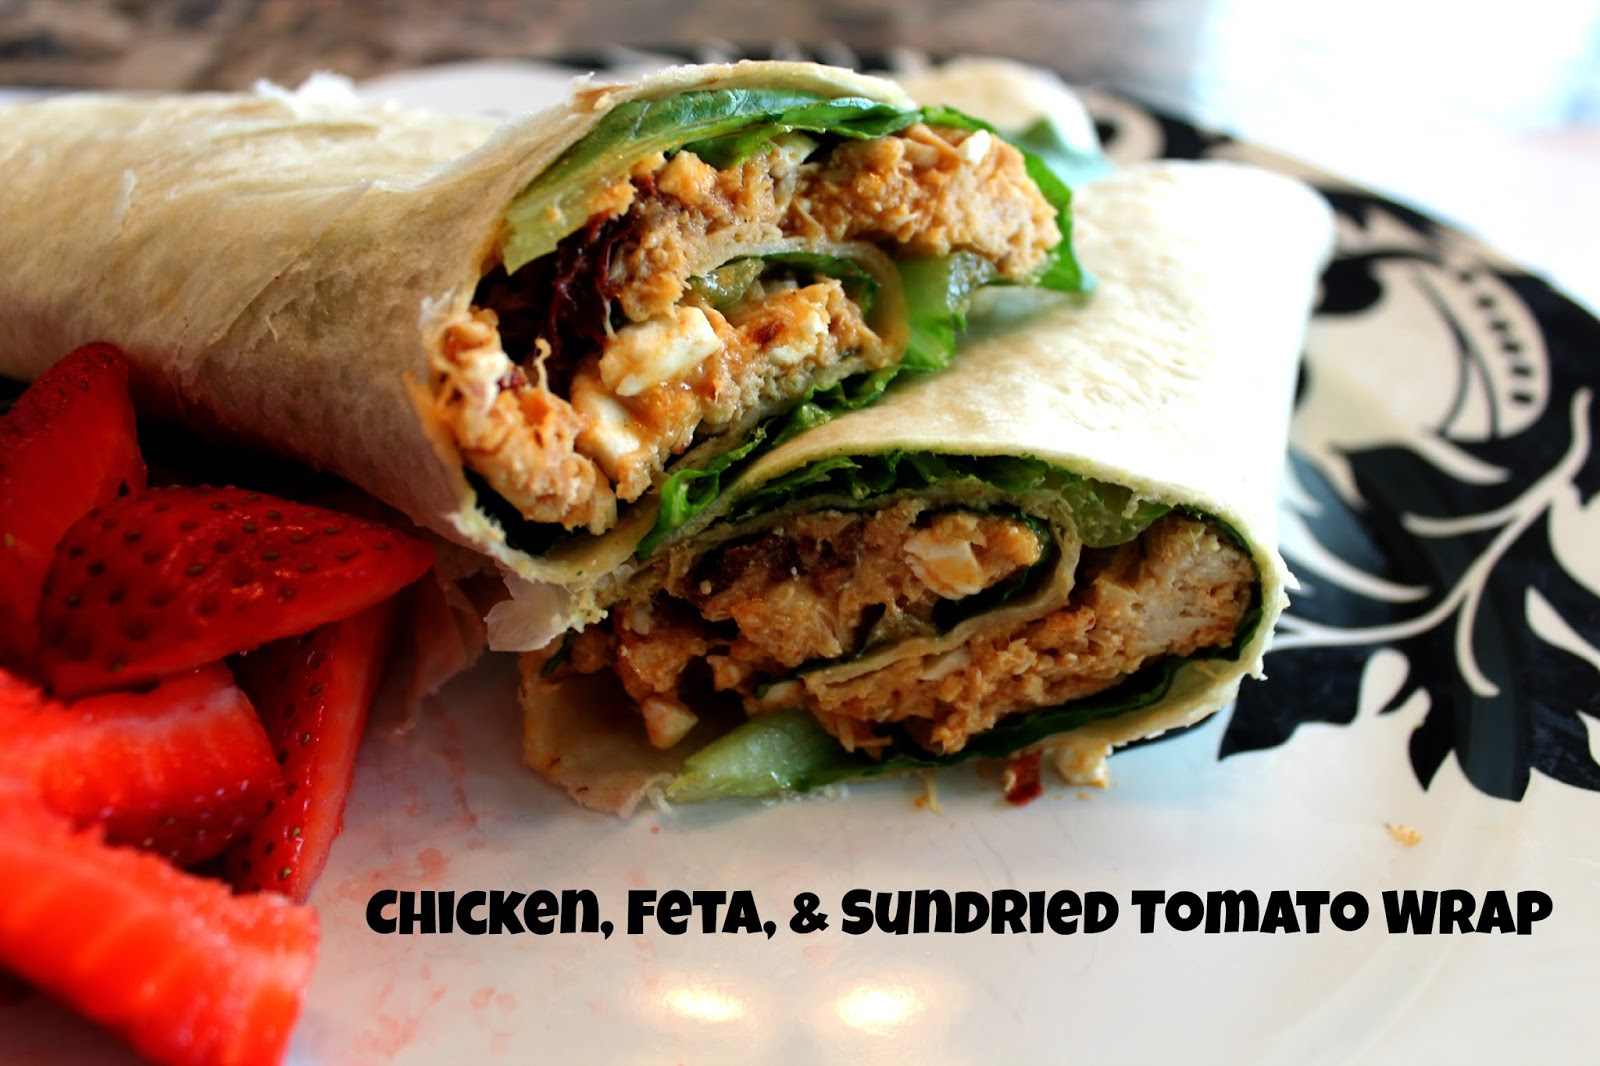 Chicken, Feta, and Sundried Tomato Wrap Sandwich:- two large tortillas - 1 to 1 1/2 cups seasoned shredded chicken - 1/4 cup feta cheese - 1/4 cup drained oil-packed sundried tomatoes - 2 tbsp. Italian dressing - desired amount of romaine lettuce